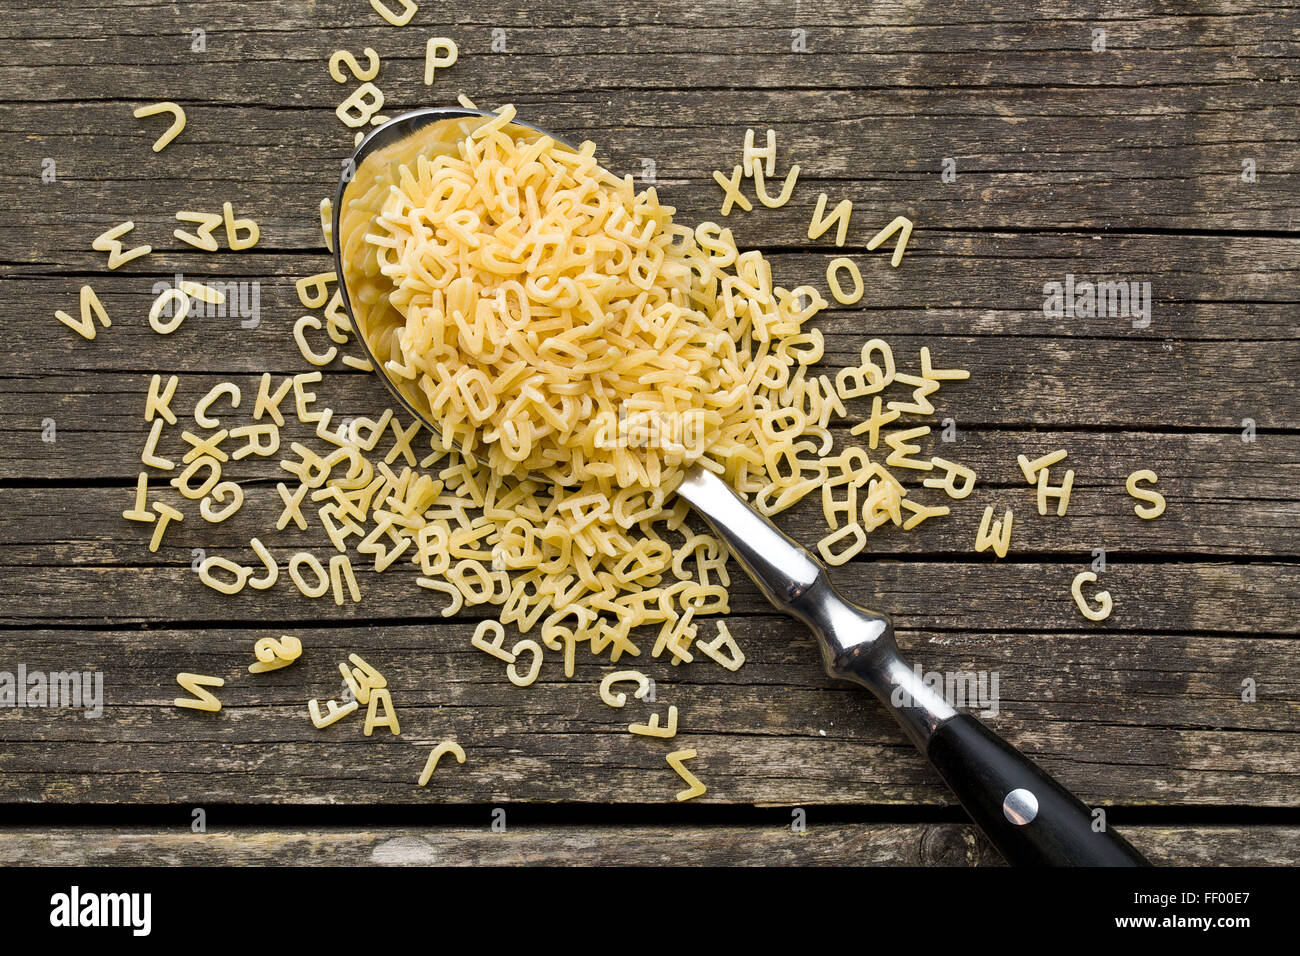 alphabet pasta in spoon on old wooden table - Stock Image